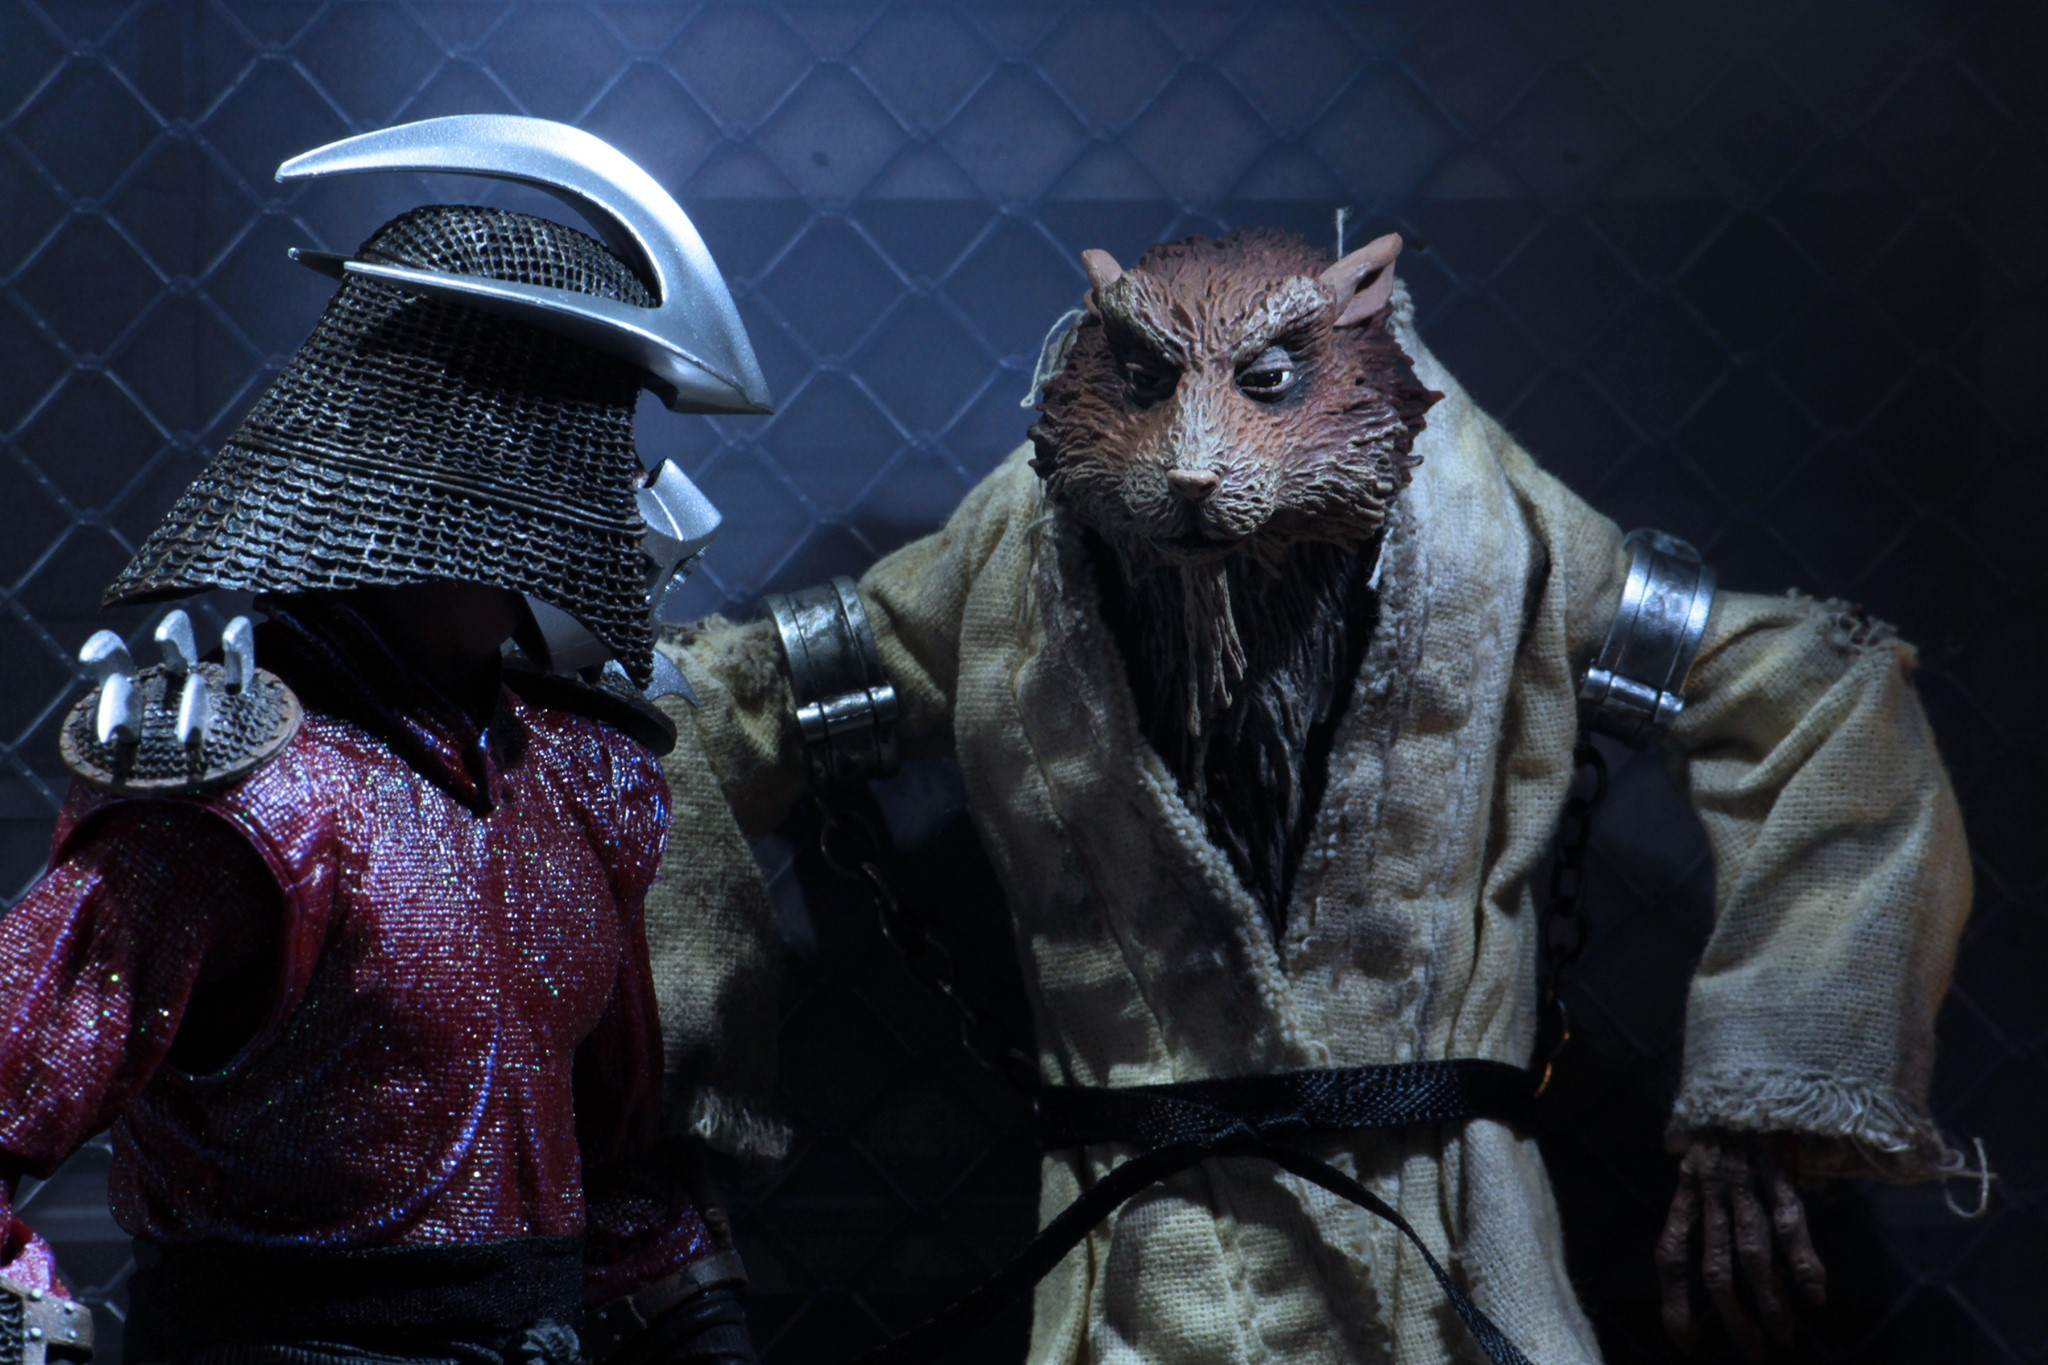 Tmnt 1990 Movie The Capture Of Splinter Sdcc 2019 Exclusive Set By Neca The Toyark News